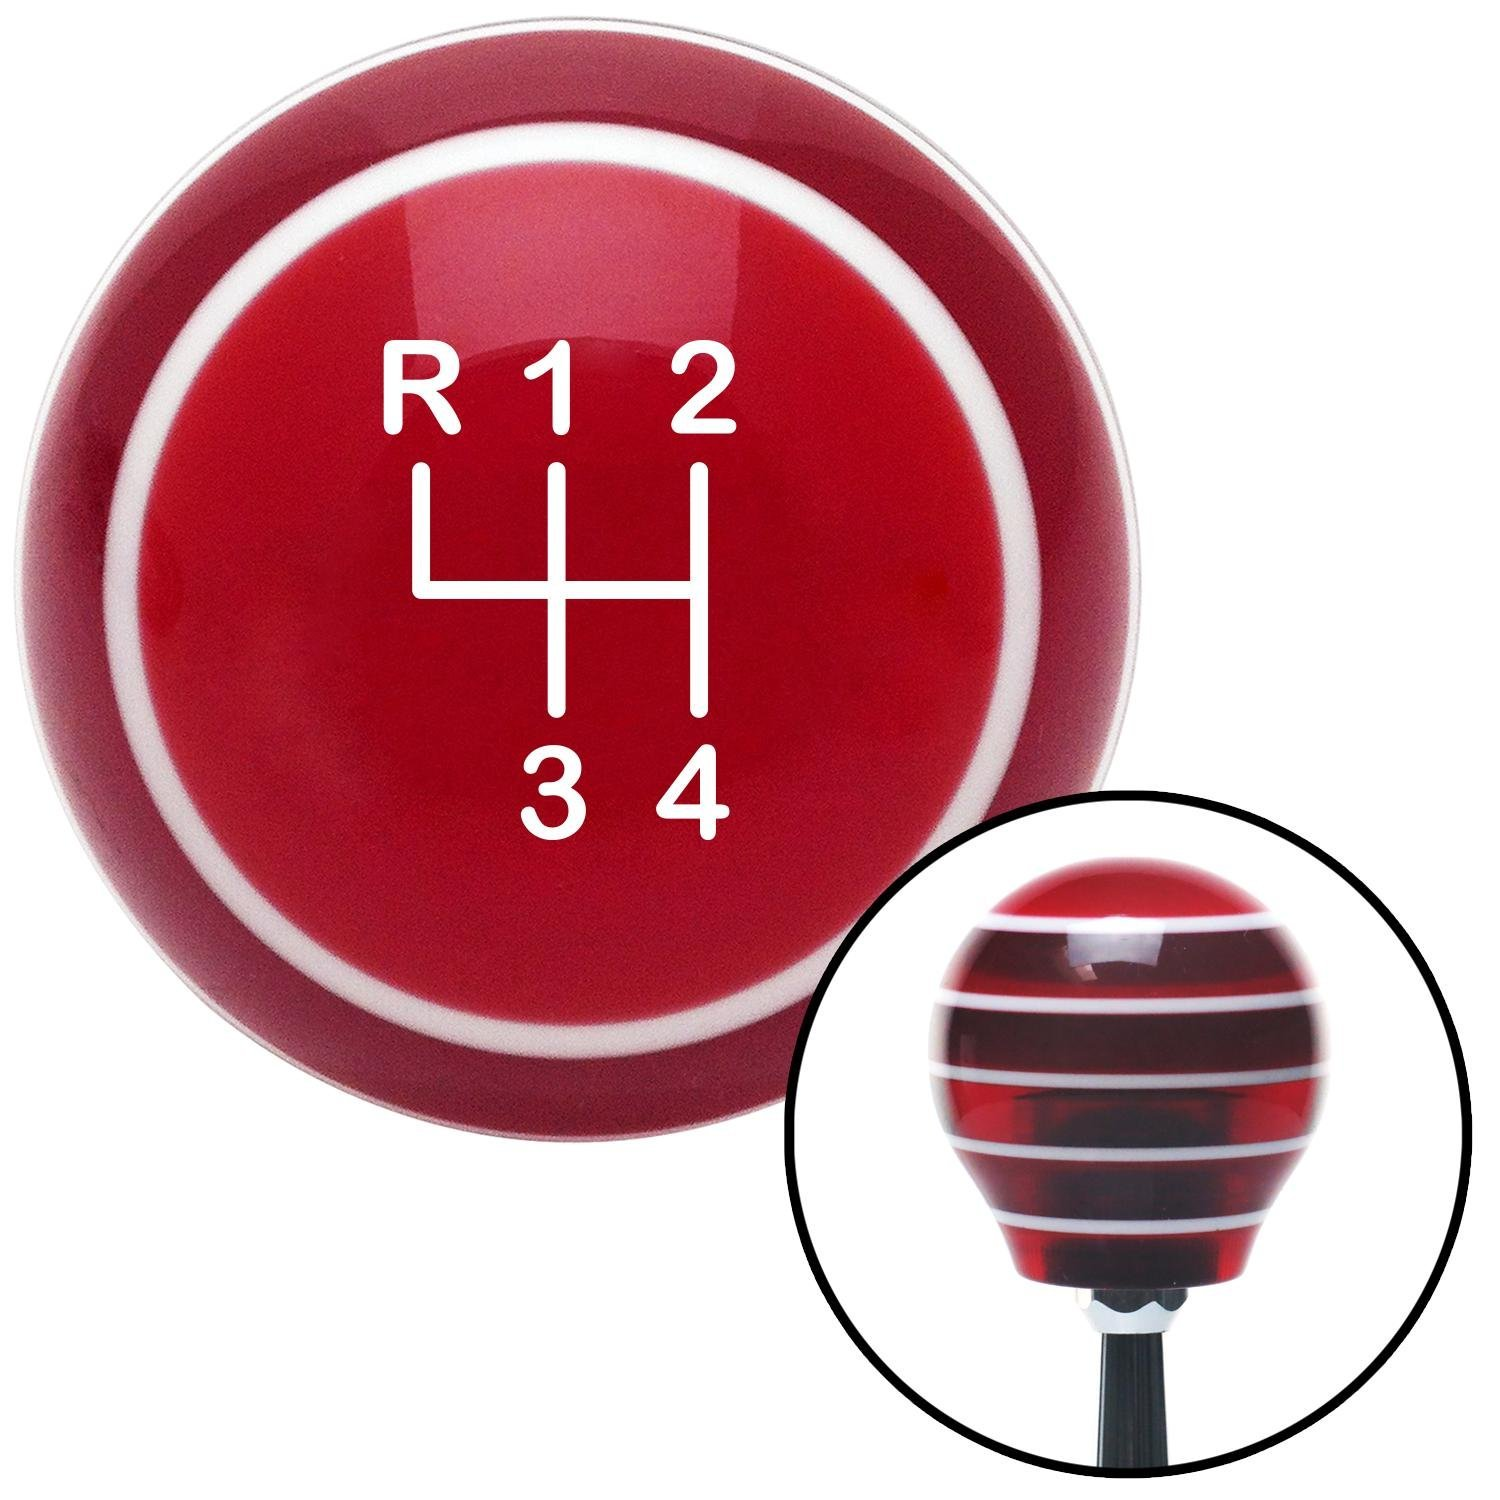 American Shifter 117819 Red Stripe Shift Knob with M16 x 1.5 Insert White Shift Pattern 44n